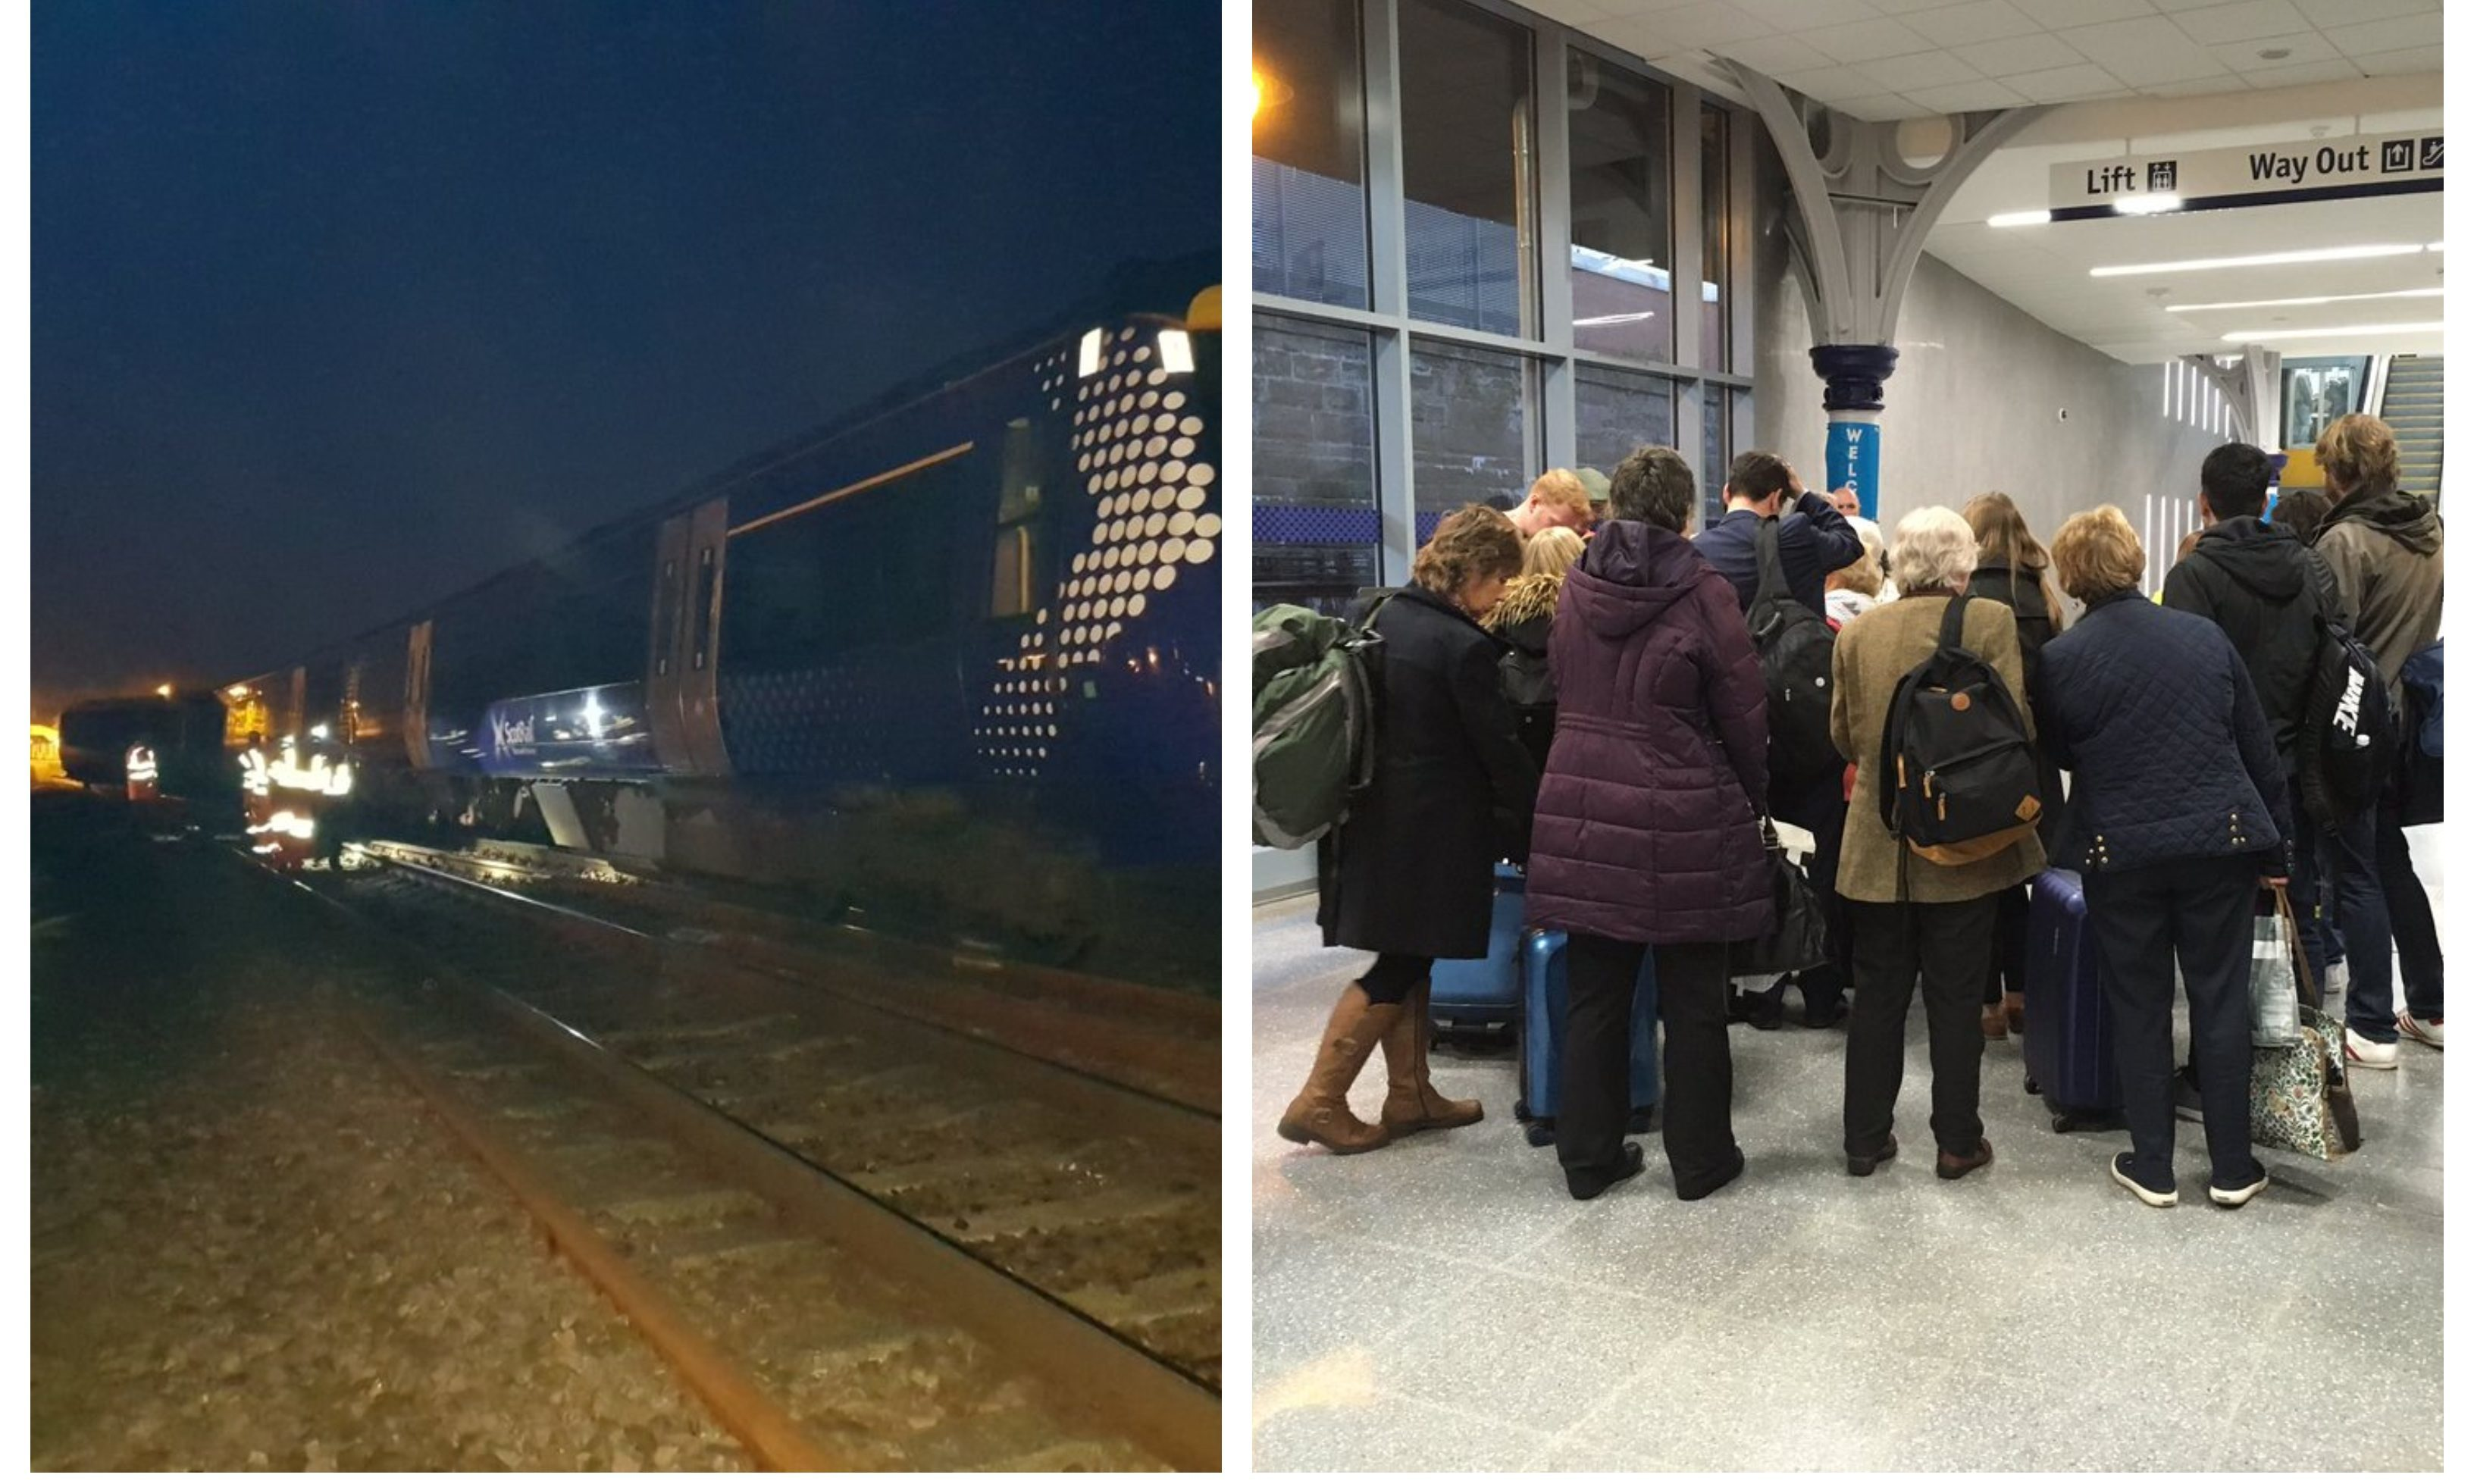 A photo from the scene near Stonehaven/passengers gathered following the cancellations at Dundee Station.